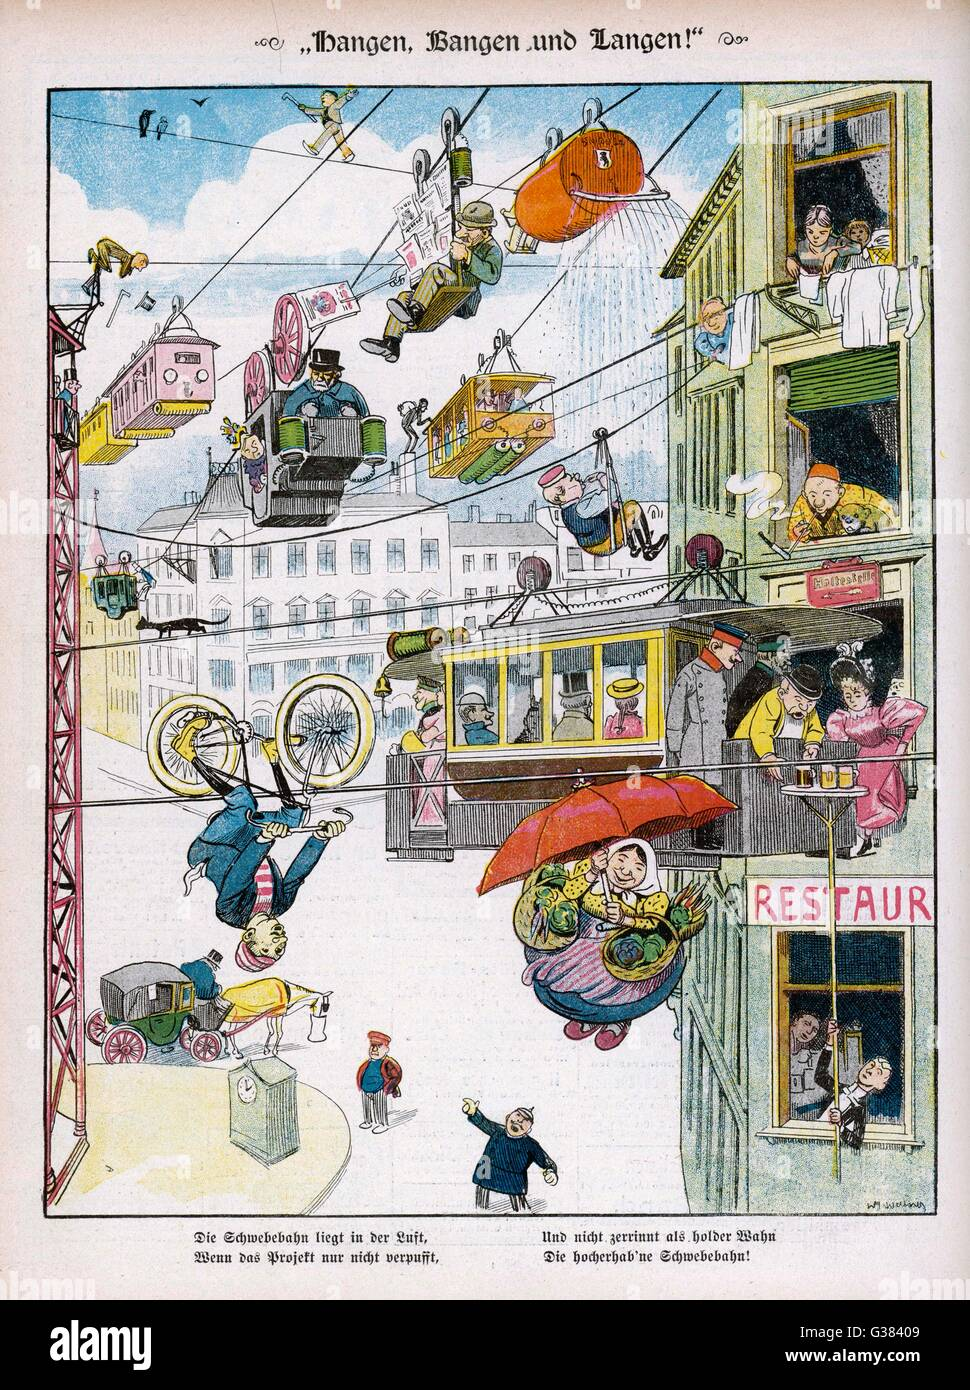 A satirical view of the  city of the future         Date: 1895 - Stock Image